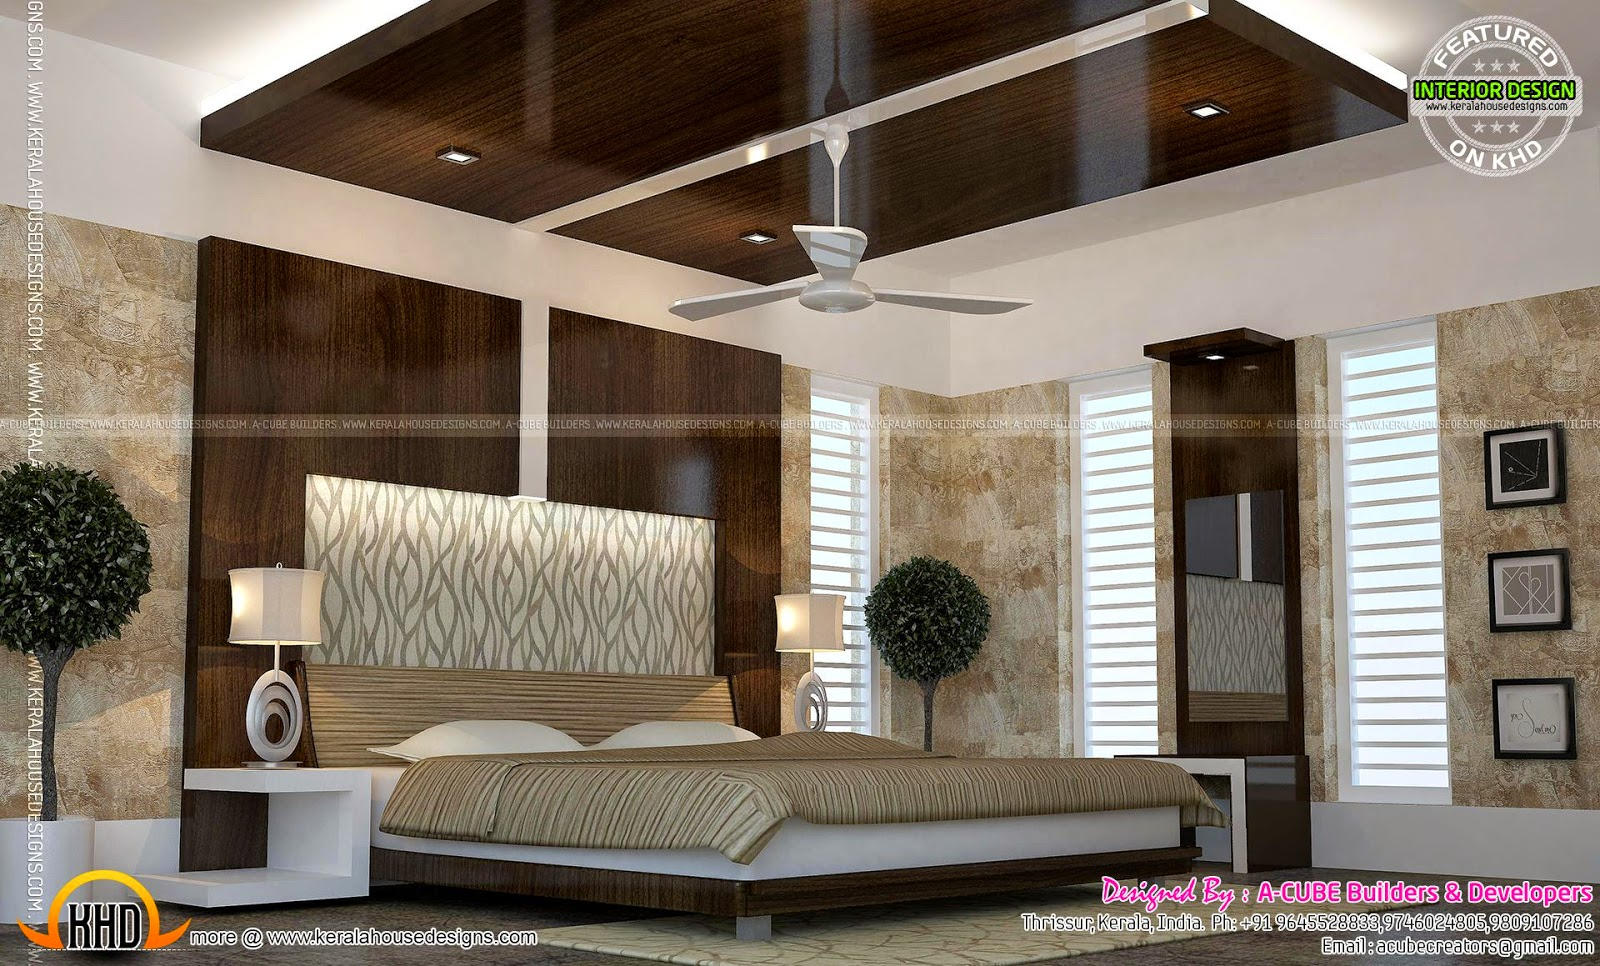 Kerala interior design ideas kerala home design and Interior design for living room and bedroom